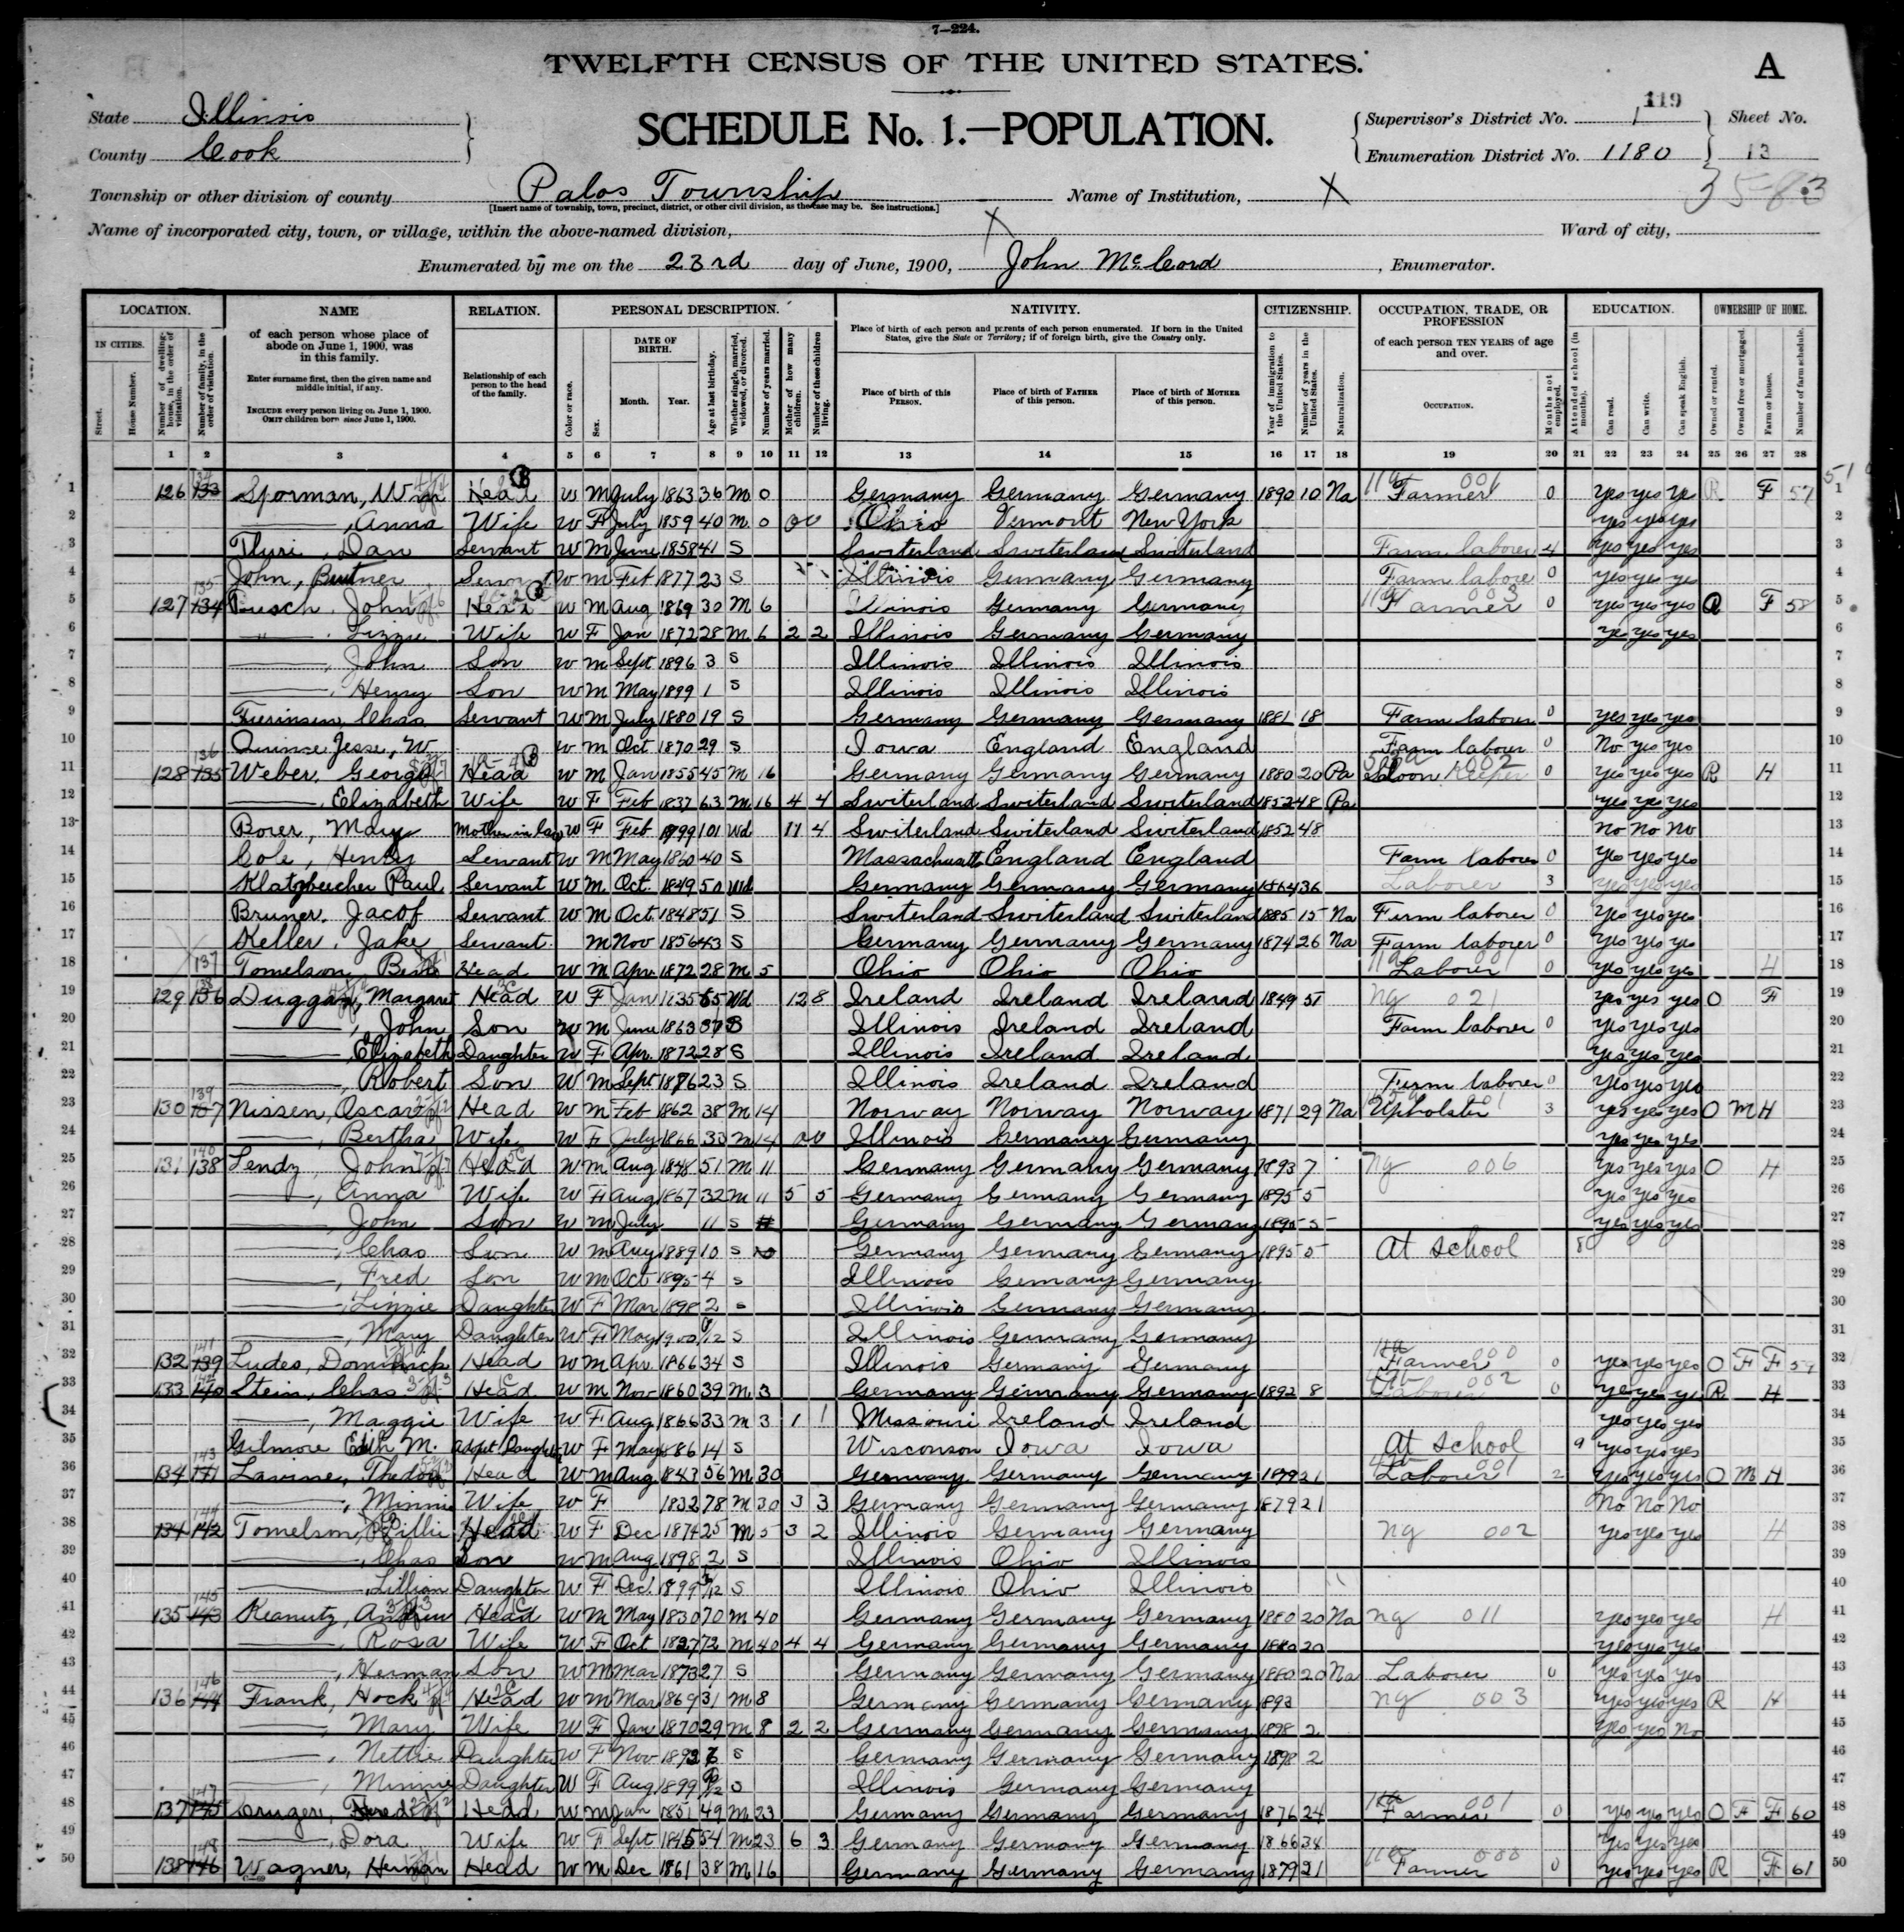 Illinois: COOK County, Enumeration District 1180, Sheet No. 13A